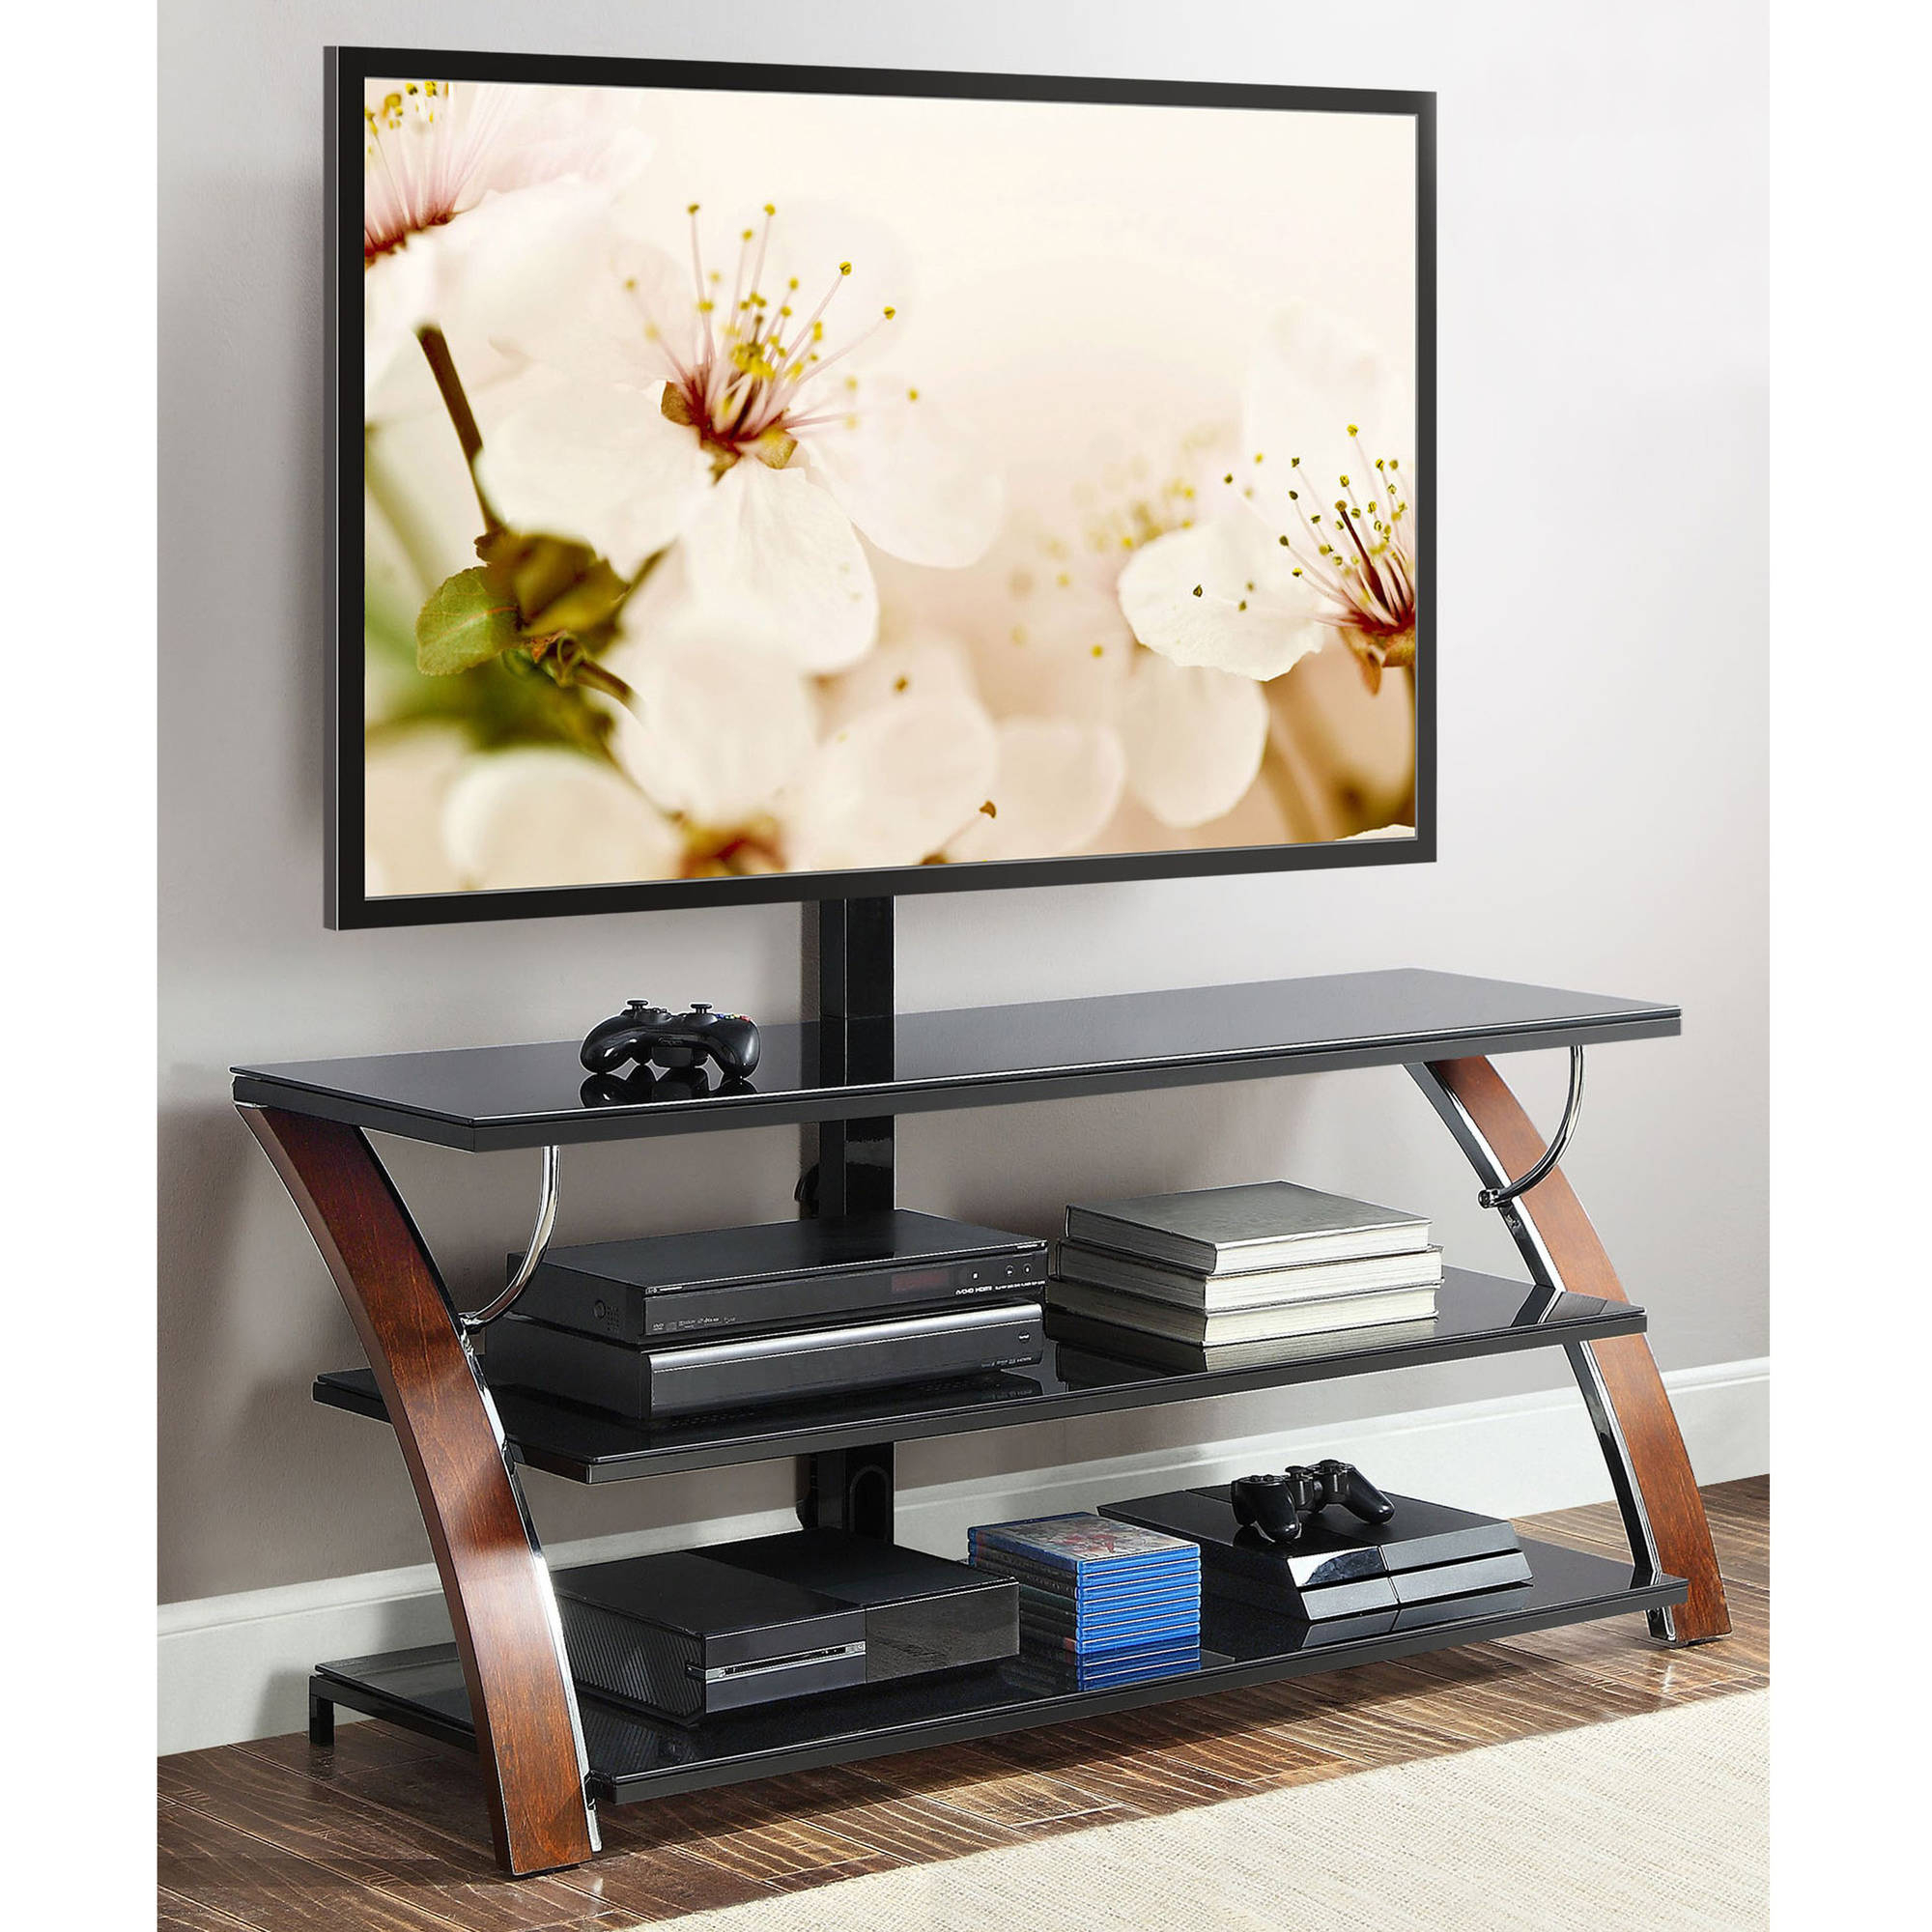 """Well Liked Unique Tv Stands For Flat Screens With Whalen Payton Brown Cherry 3 In 1 Flat Panel Tv Stand For Tvs Up To 65"""" –  Walmart (View 20 of 20)"""